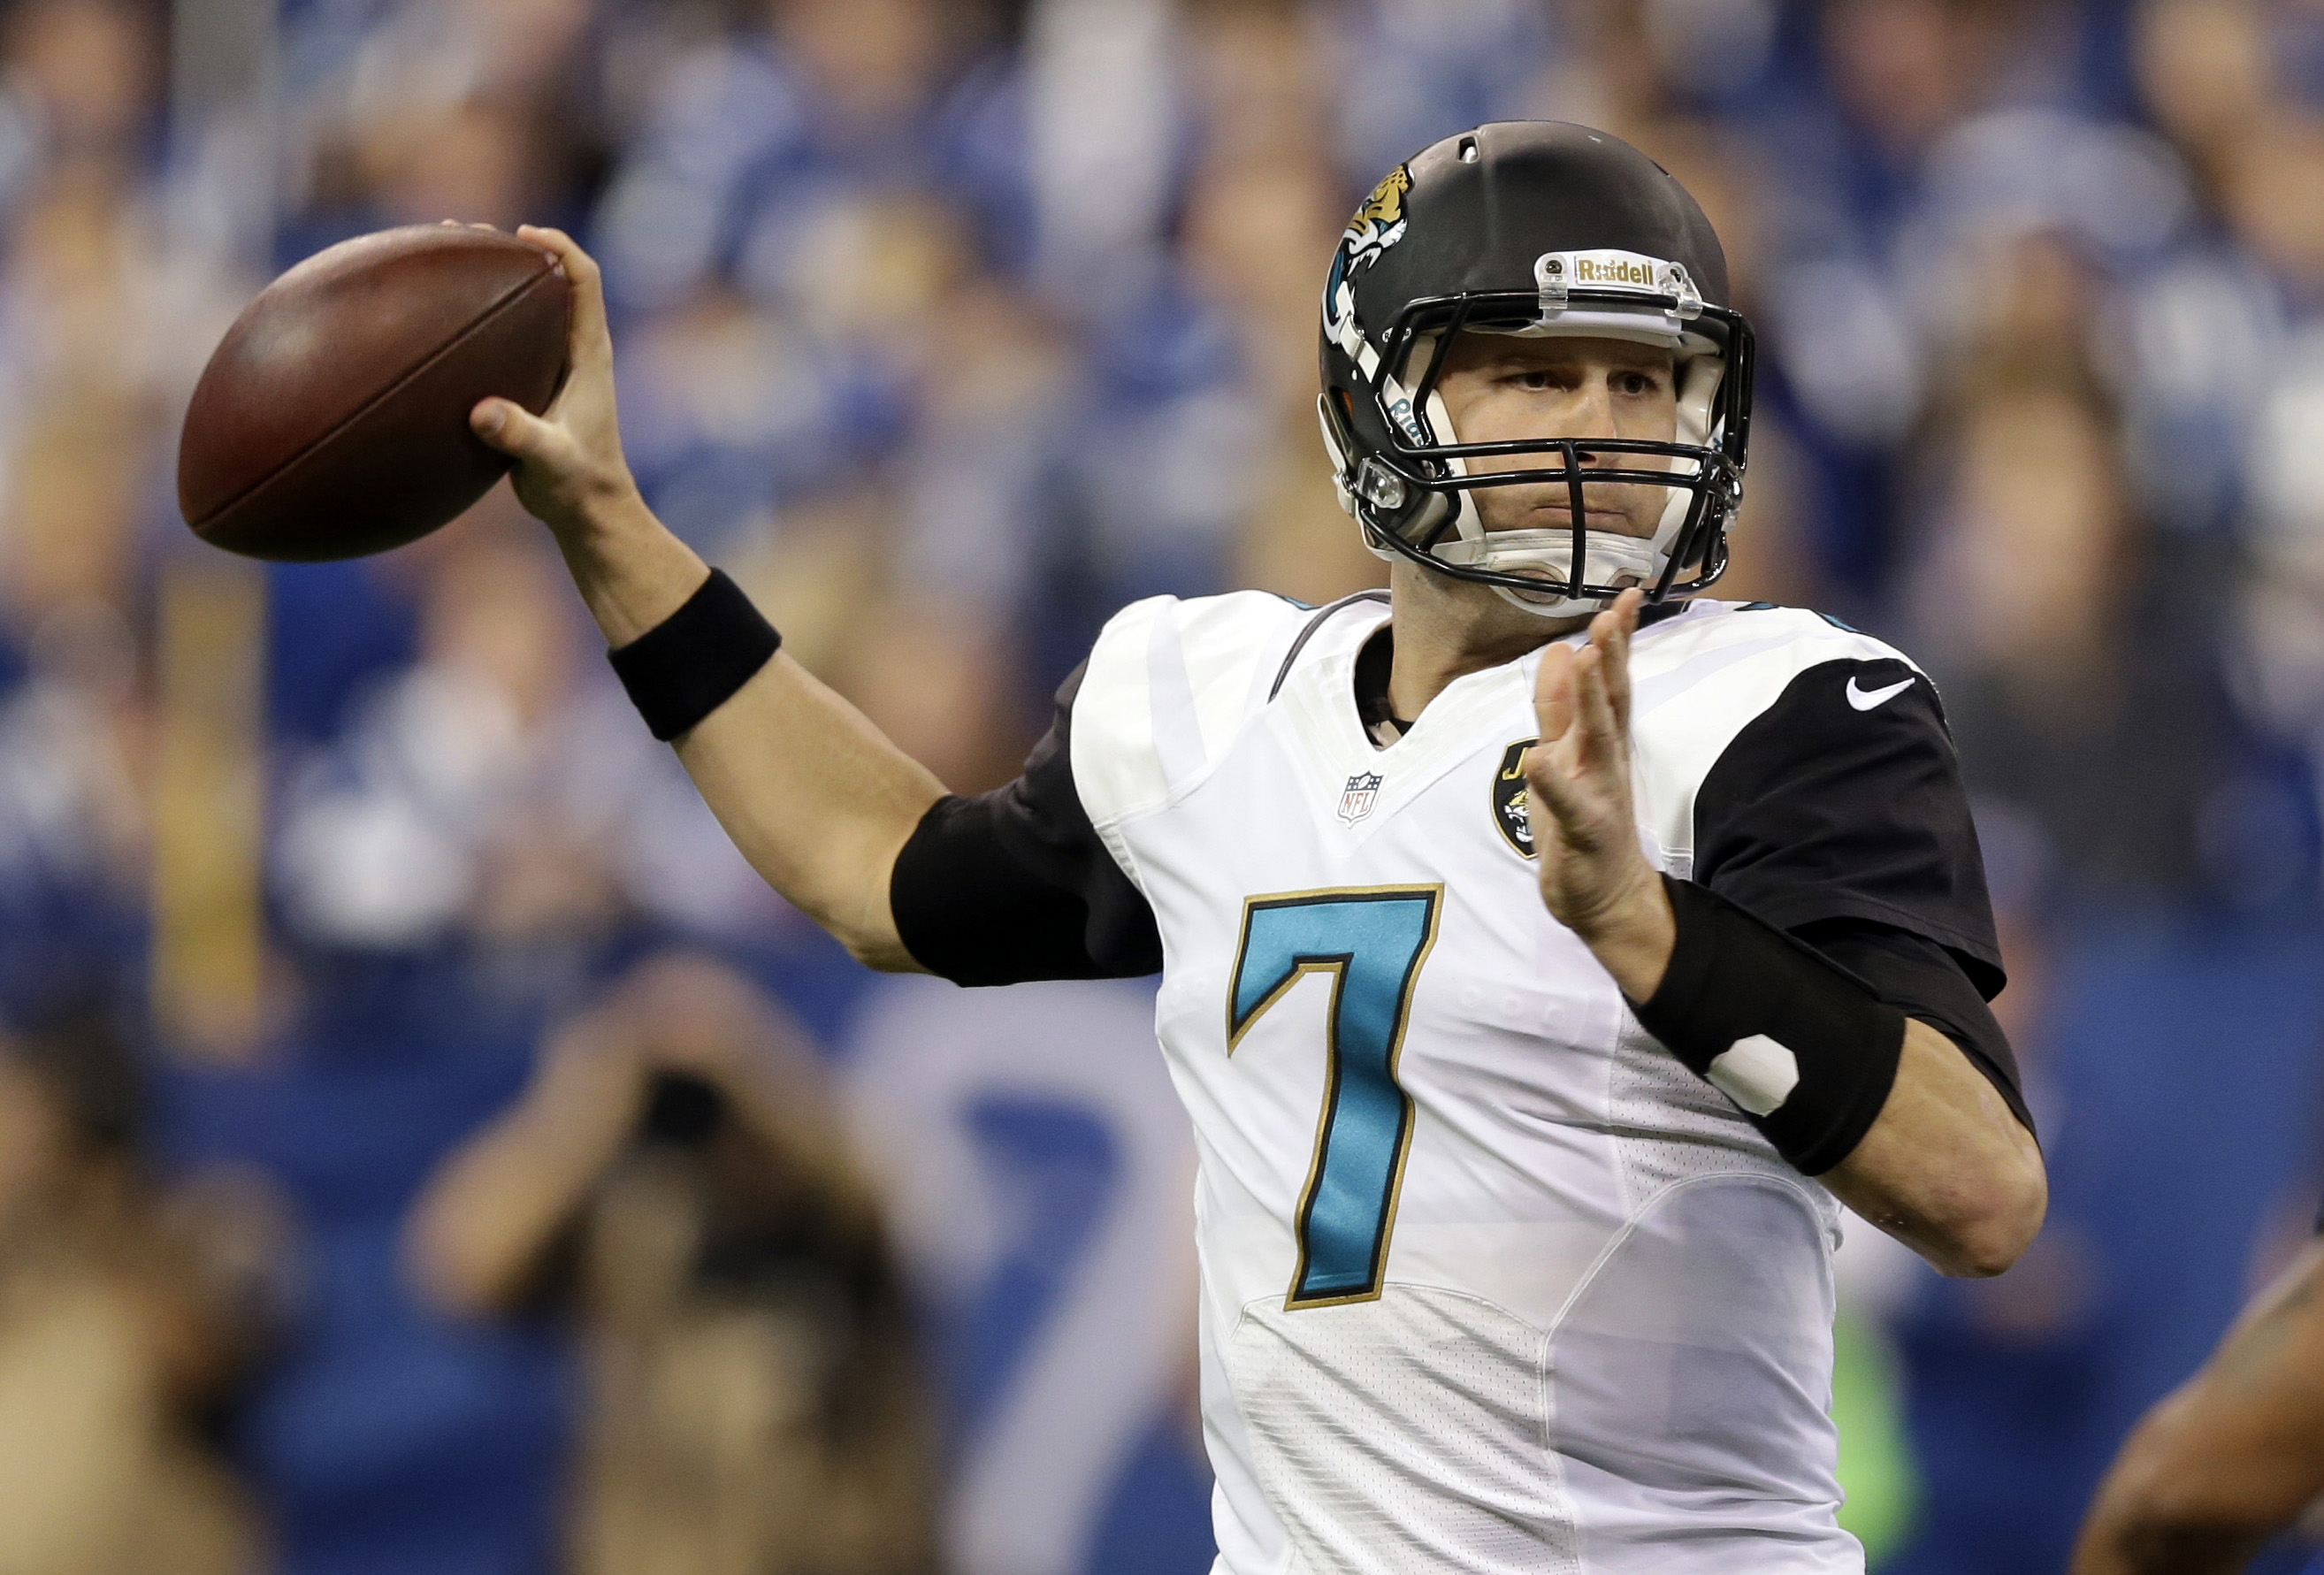 Jacksonville Jaguars' Chad Henne (7) throws during the first half of an NFL football game against the Indianapolis Colts, Sunday, Dec. 29, 2013, in Indianapolis